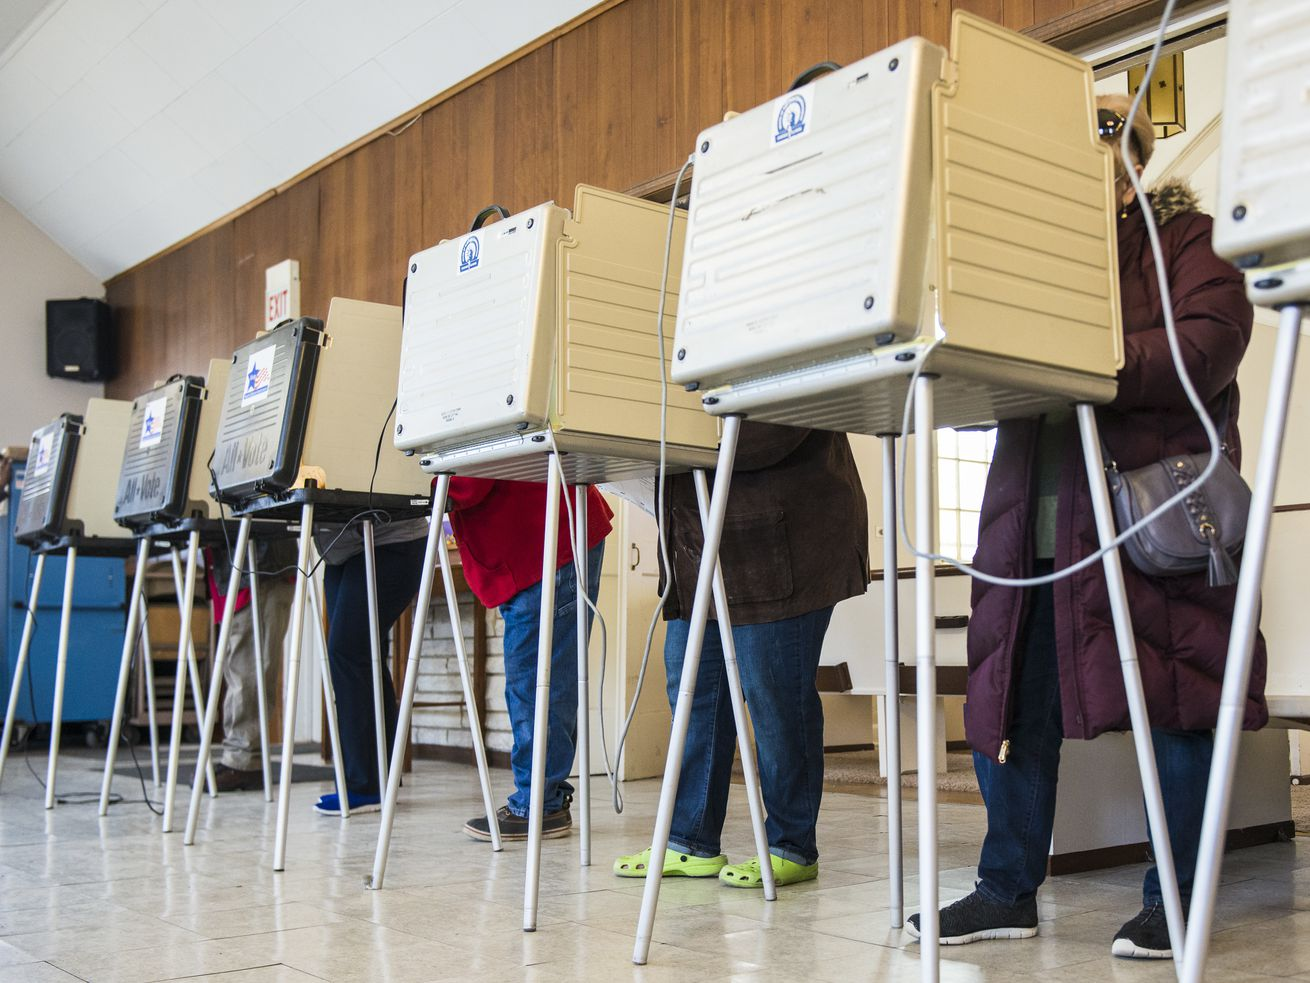 Will 20% of Illinois ballots be cast by mail? State exceeds 1.1 million requests for vote-by-mail ballots